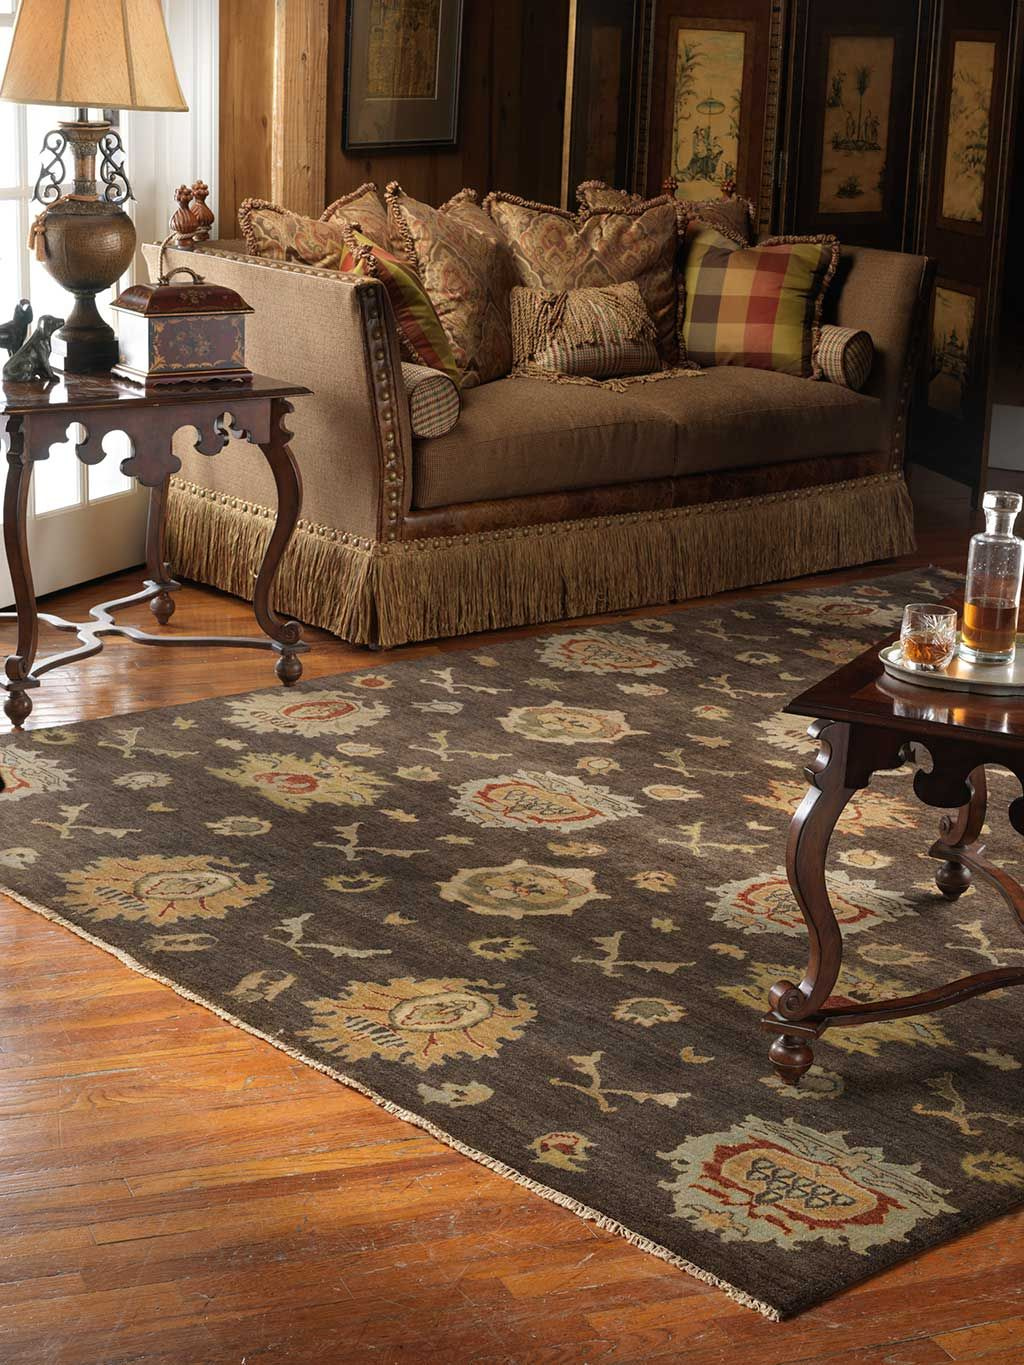 Hand knotted rug in its deep rich color is a perfect piece